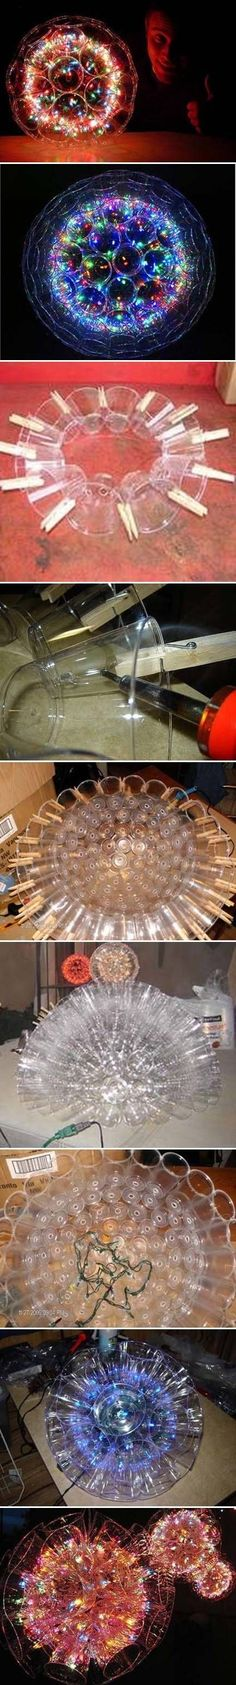 DIY Lighting Ideas: Lamps & Chandeliers Made From Everyday Objects Sparkle Balls! Plastic cups stuck together, with Christmas lights inside. Full tutorial at link Cup Crafts, Diy And Crafts, Arts And Crafts, Easy Crafts, Bottle Crafts, Christmas Lights, Christmas Crafts, Christmas Decorations, Christmas Lamp